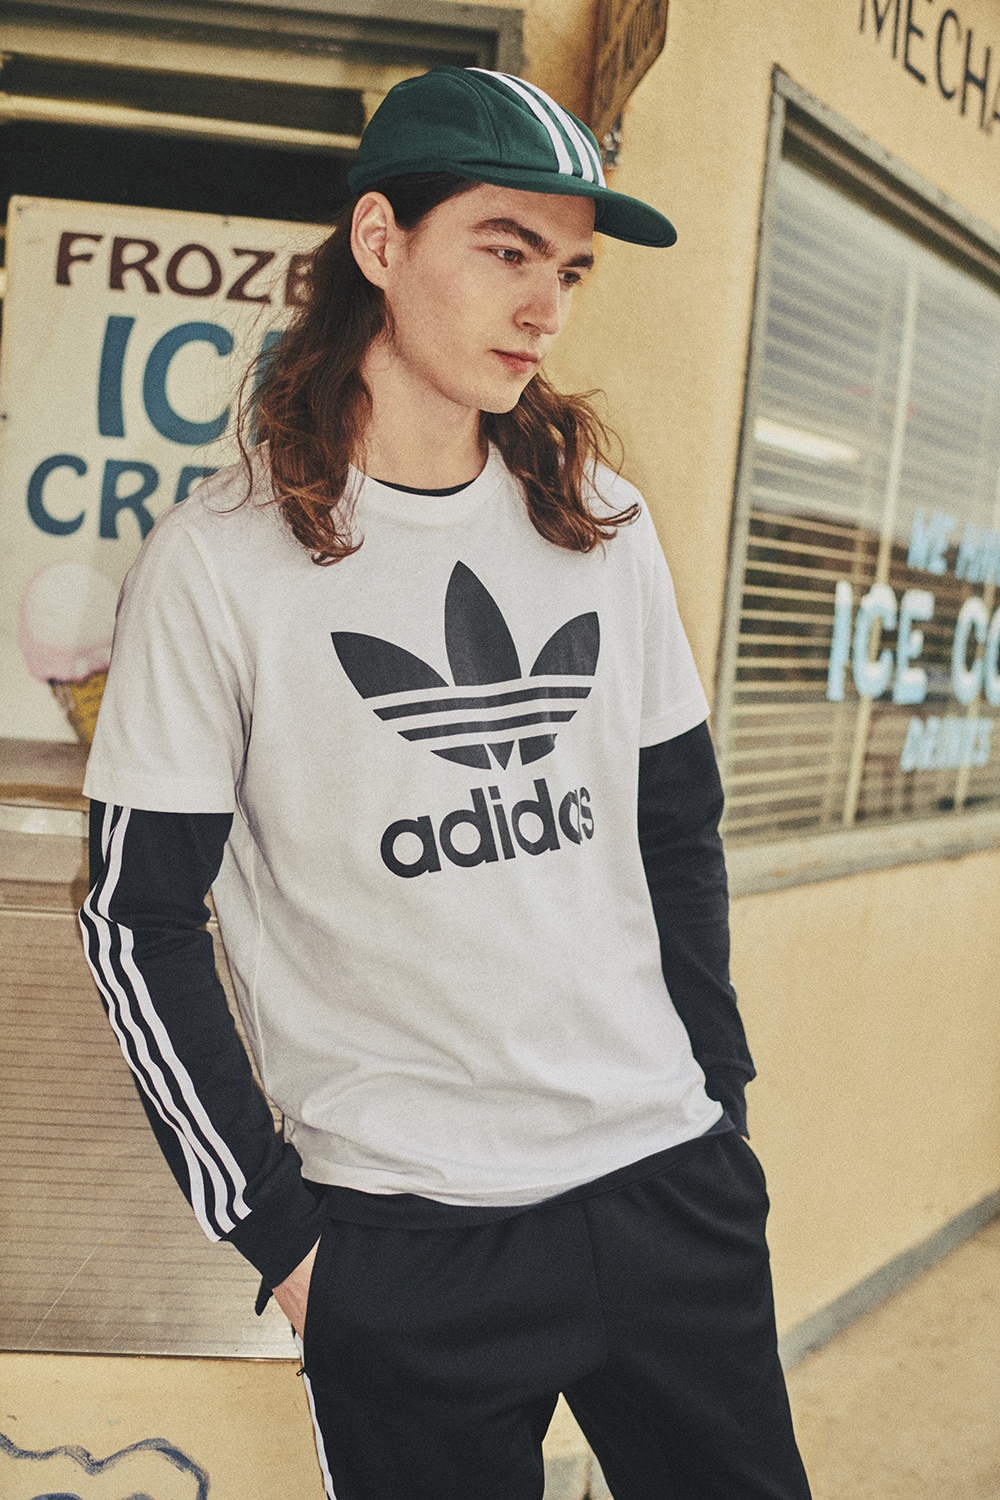 A guy wearing an adidas tee over a long sleeve and a cap with three stripes stares off into the distance, standing with his hands in his pockets in front of a sign for ice cream.